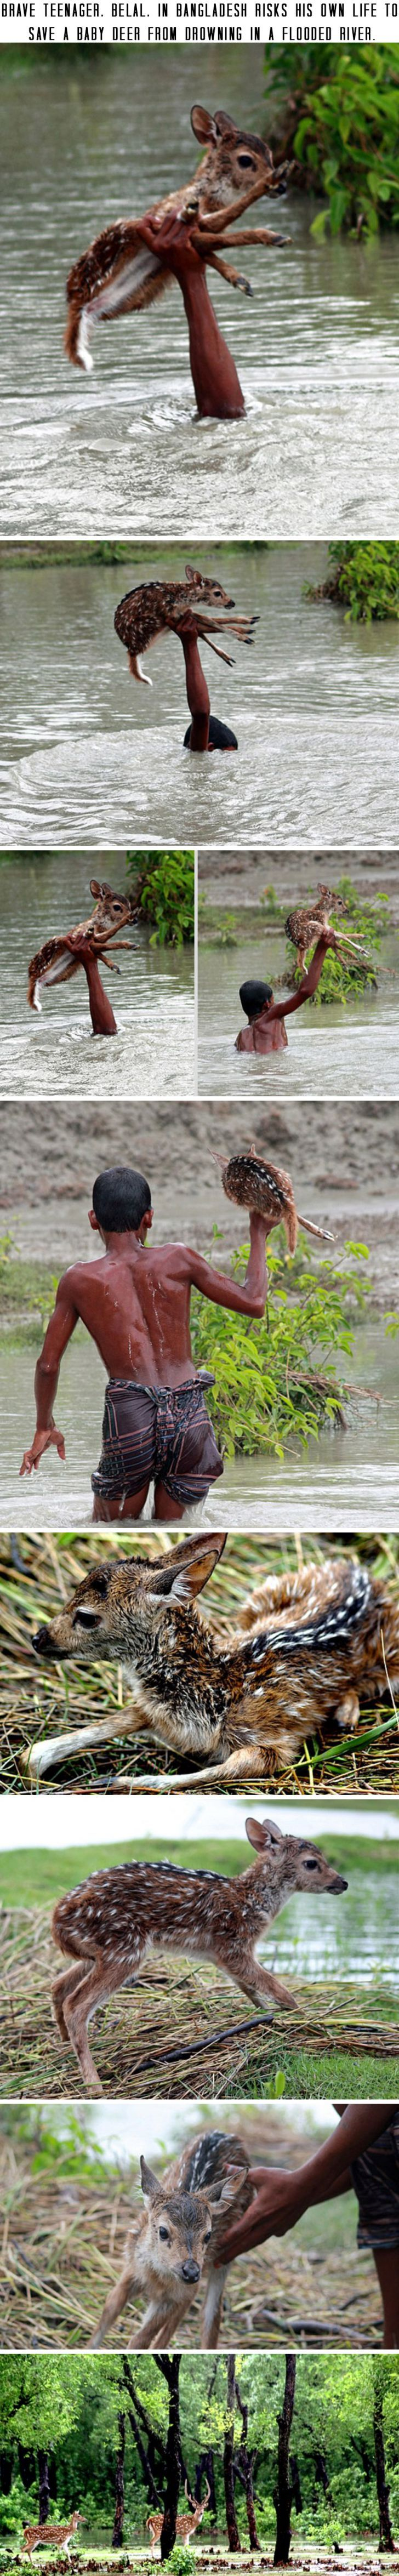 Brave teenager, Belal, in Bangladesh risks his own life to save a baby deer from drowning in a flooded river.: Deer Faith, Baby Deer, Help Animals, Aaaawwww Baby, Freakin Awesome, Faith In Humanity Restored, Faith Restored